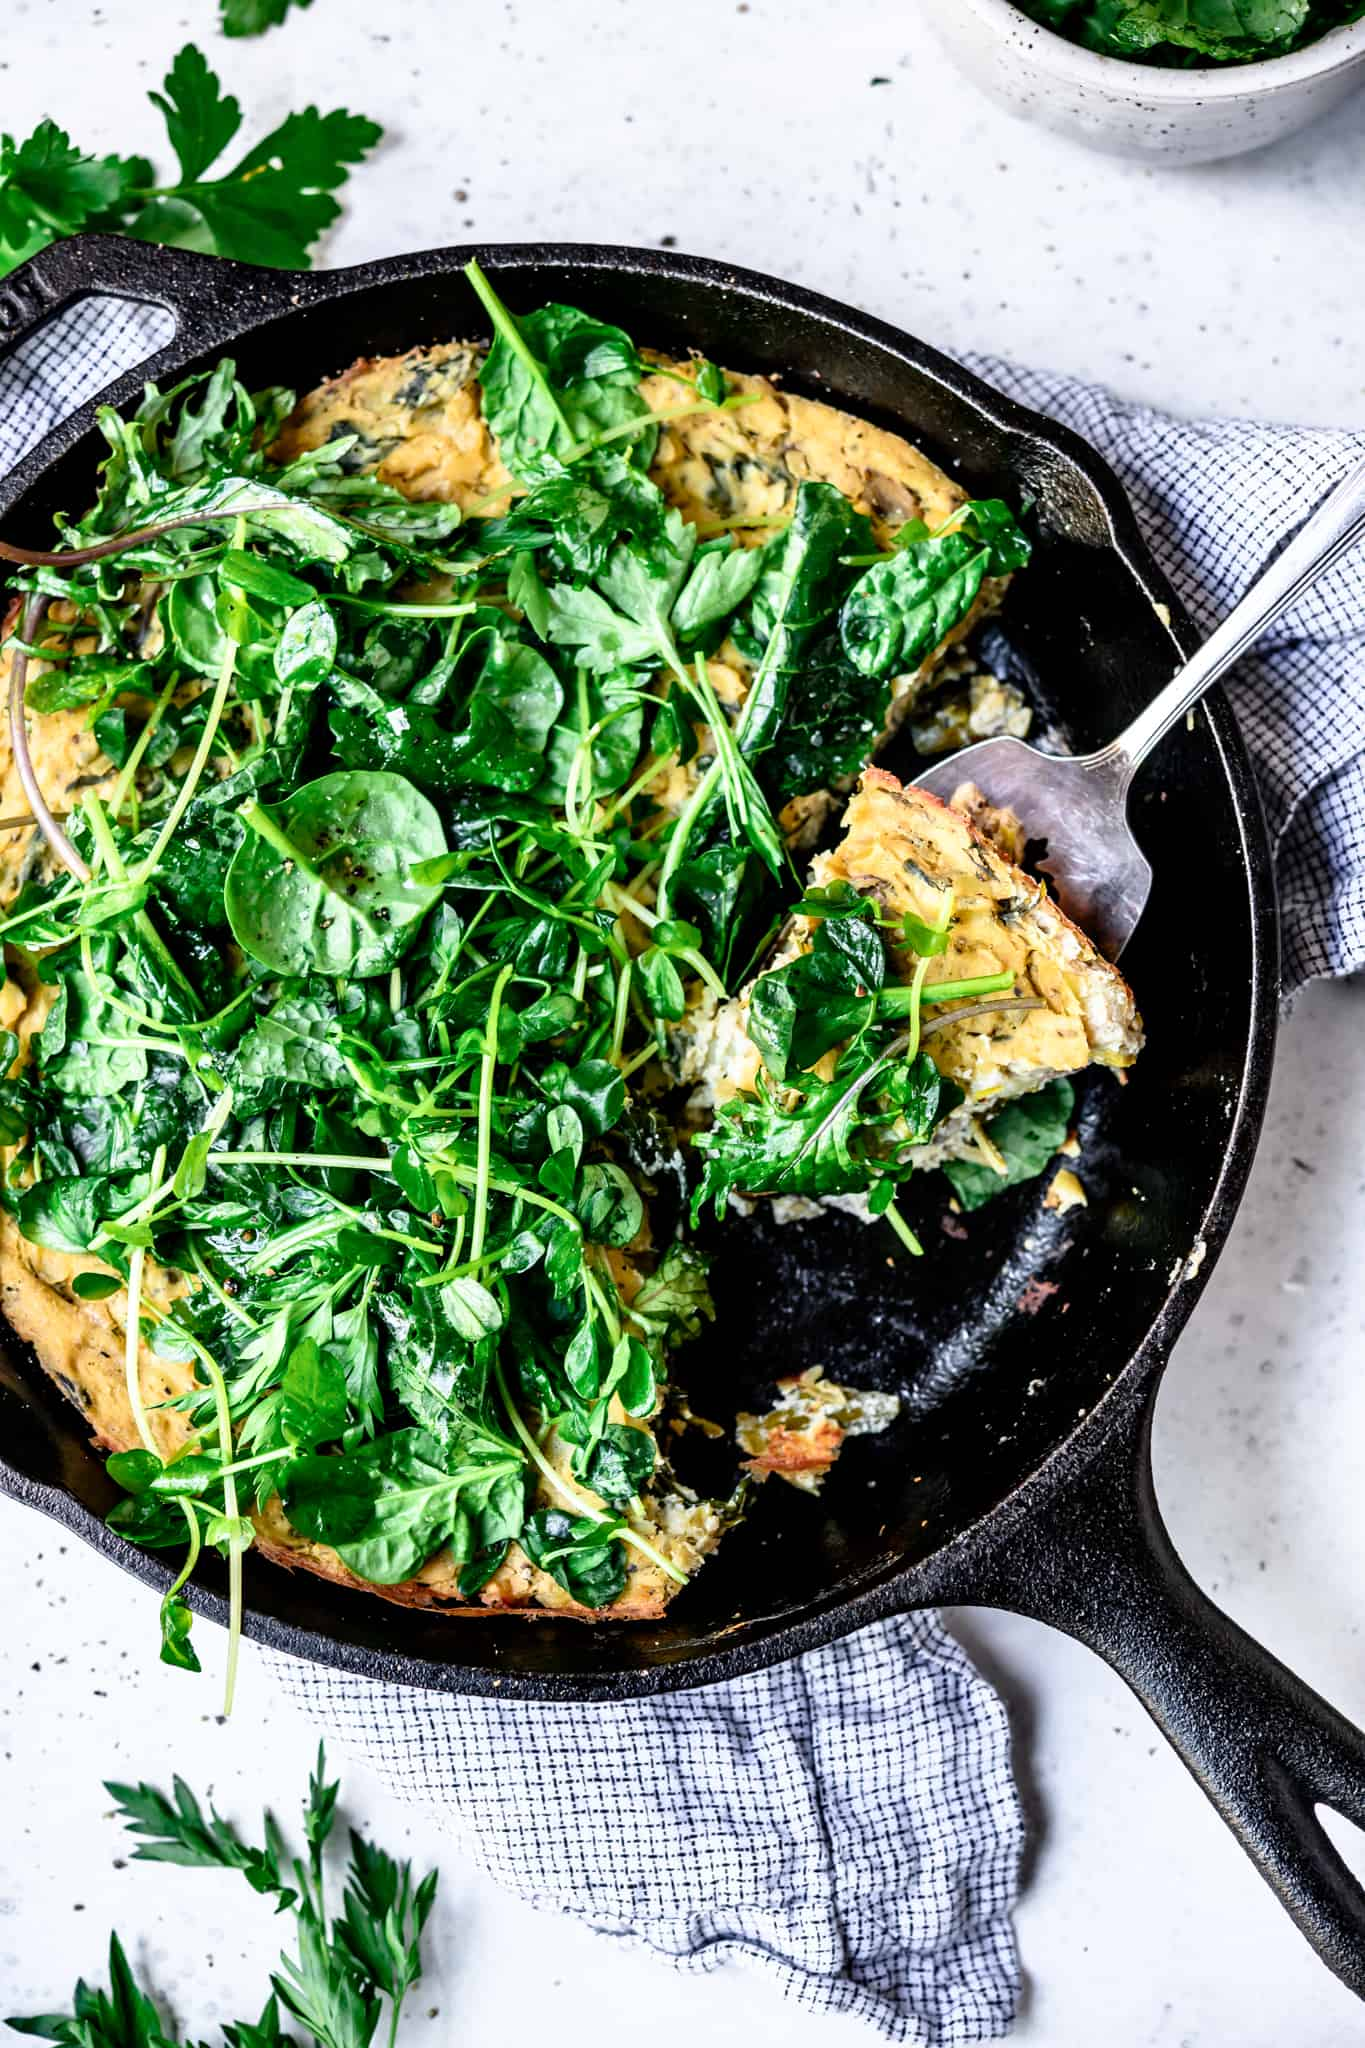 Overhead view of vegan spring vegetable frittata in a cast iron skillet on white background